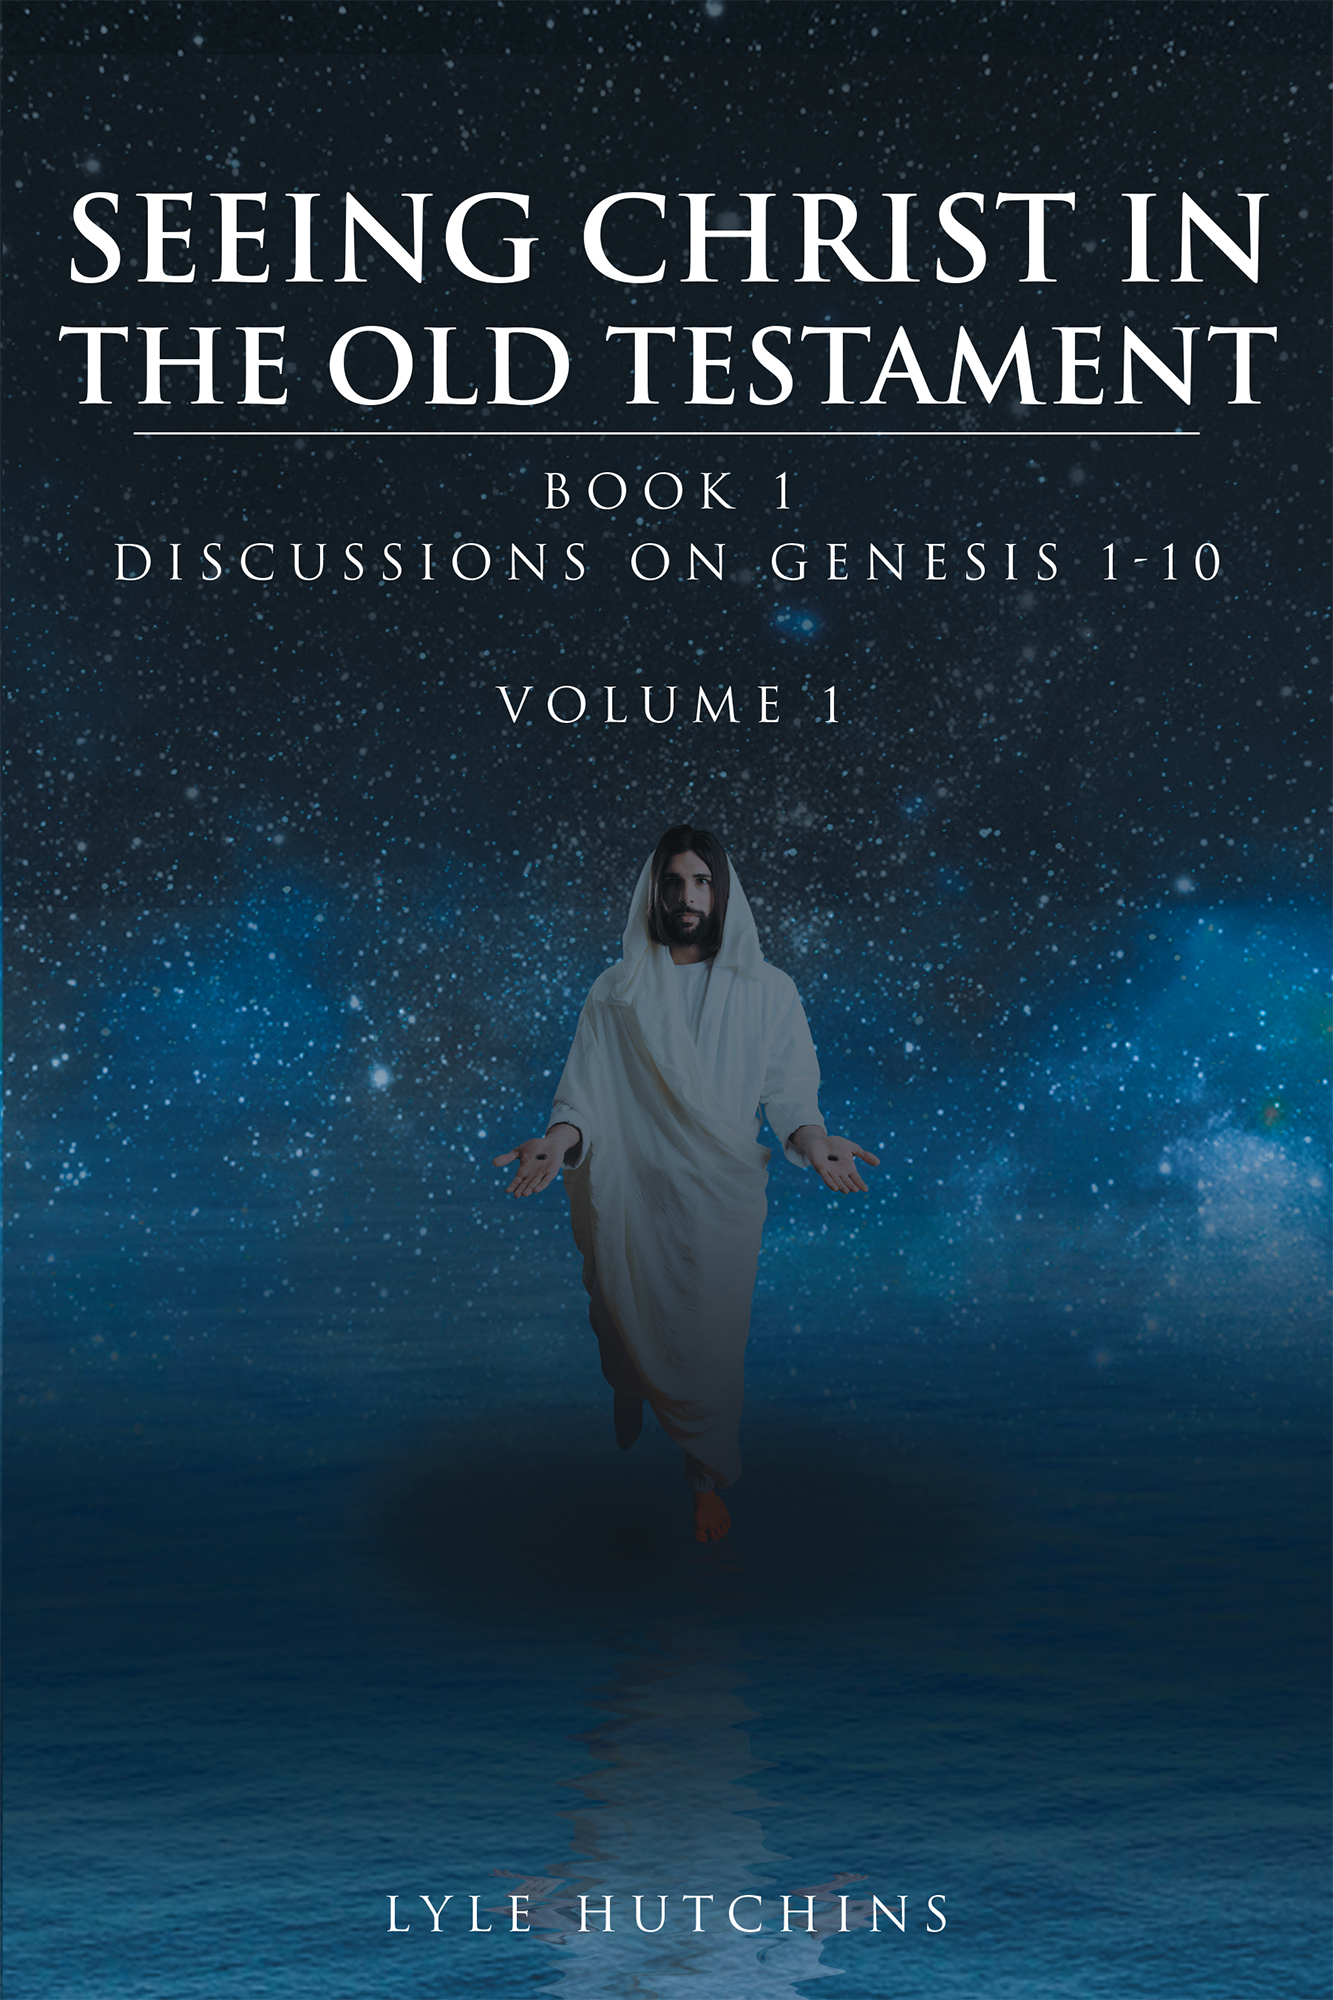 a discussion on the old testament I therefore had to select which particular themes and concepts to discuss although the title of this research is old testament spirituality in the gospel of john, my intention is to take a demarcated text from the prologue (1:14-18) of the gospel of john and try to explore the spirituality in it that relates closely to parallel themes.